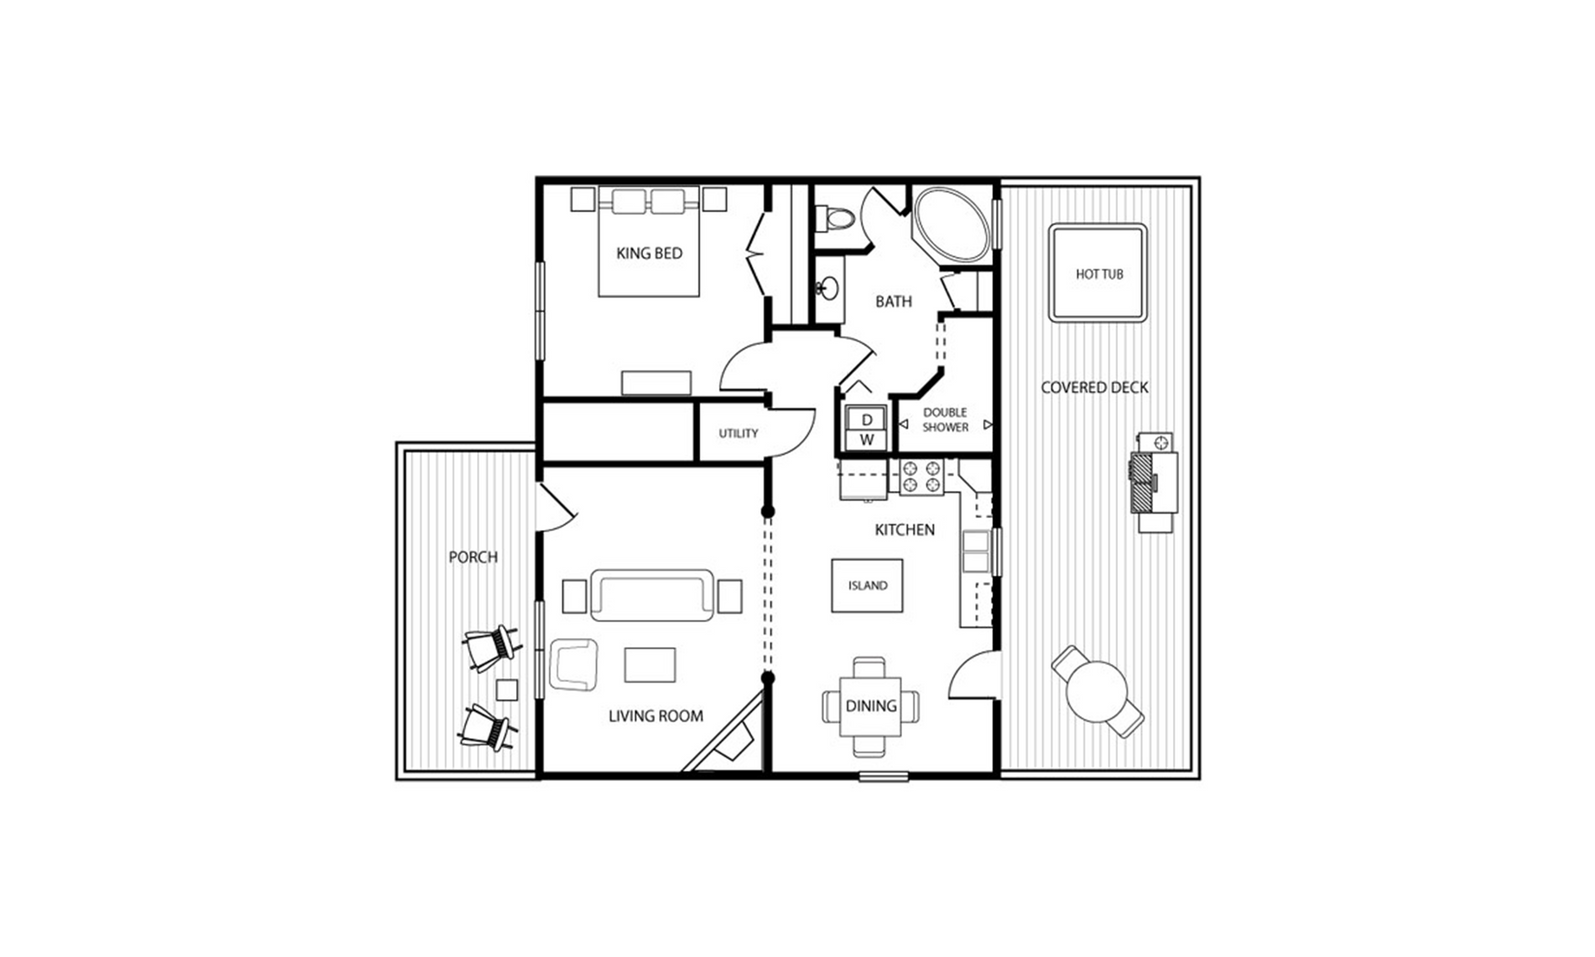 The floor plan of the Cedar